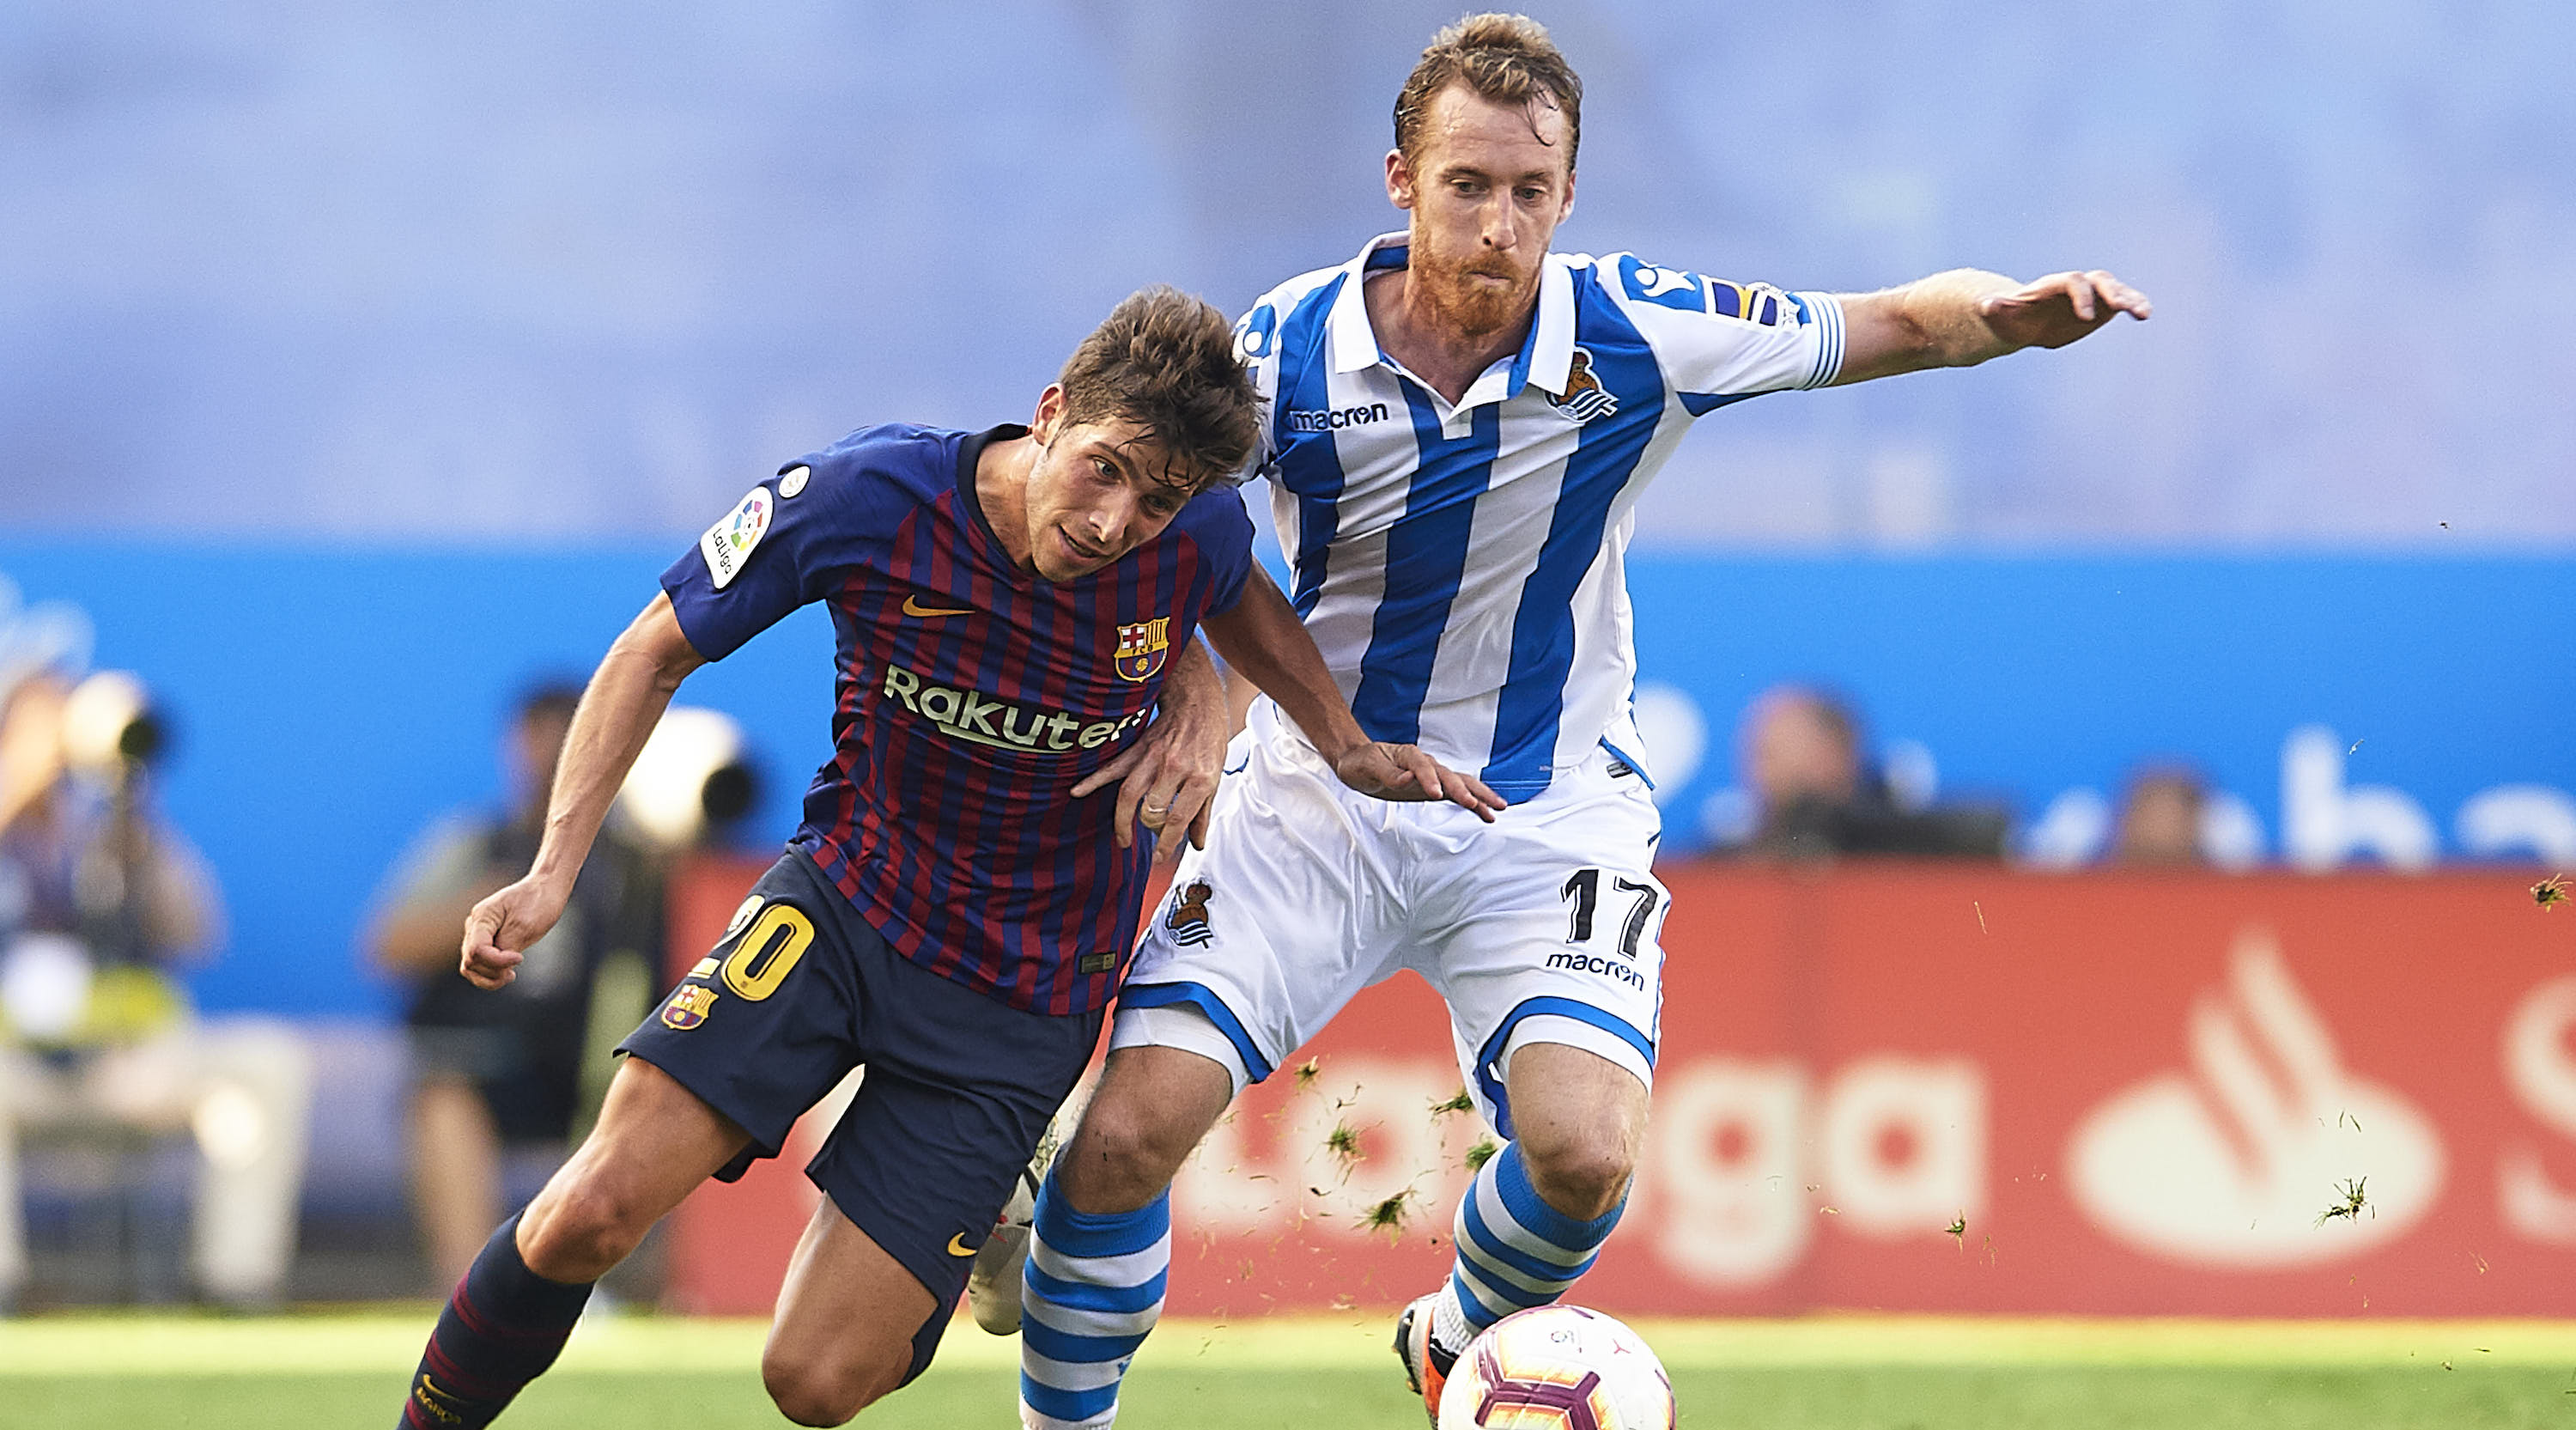 SAN SEBASTIAN, SPAIN - SEPTEMBER 15: Sergio Roberto of FC Barcelona (L) competes for the ball with David Zurutuza of Real Sociedad (R) during the La Liga match between Real Sociedad and FC Barcelona at Estadio Anoeta on September 15, 2018 in San Sebastian, Spain. (Photo by Aitor Alcalde/Getty Images)